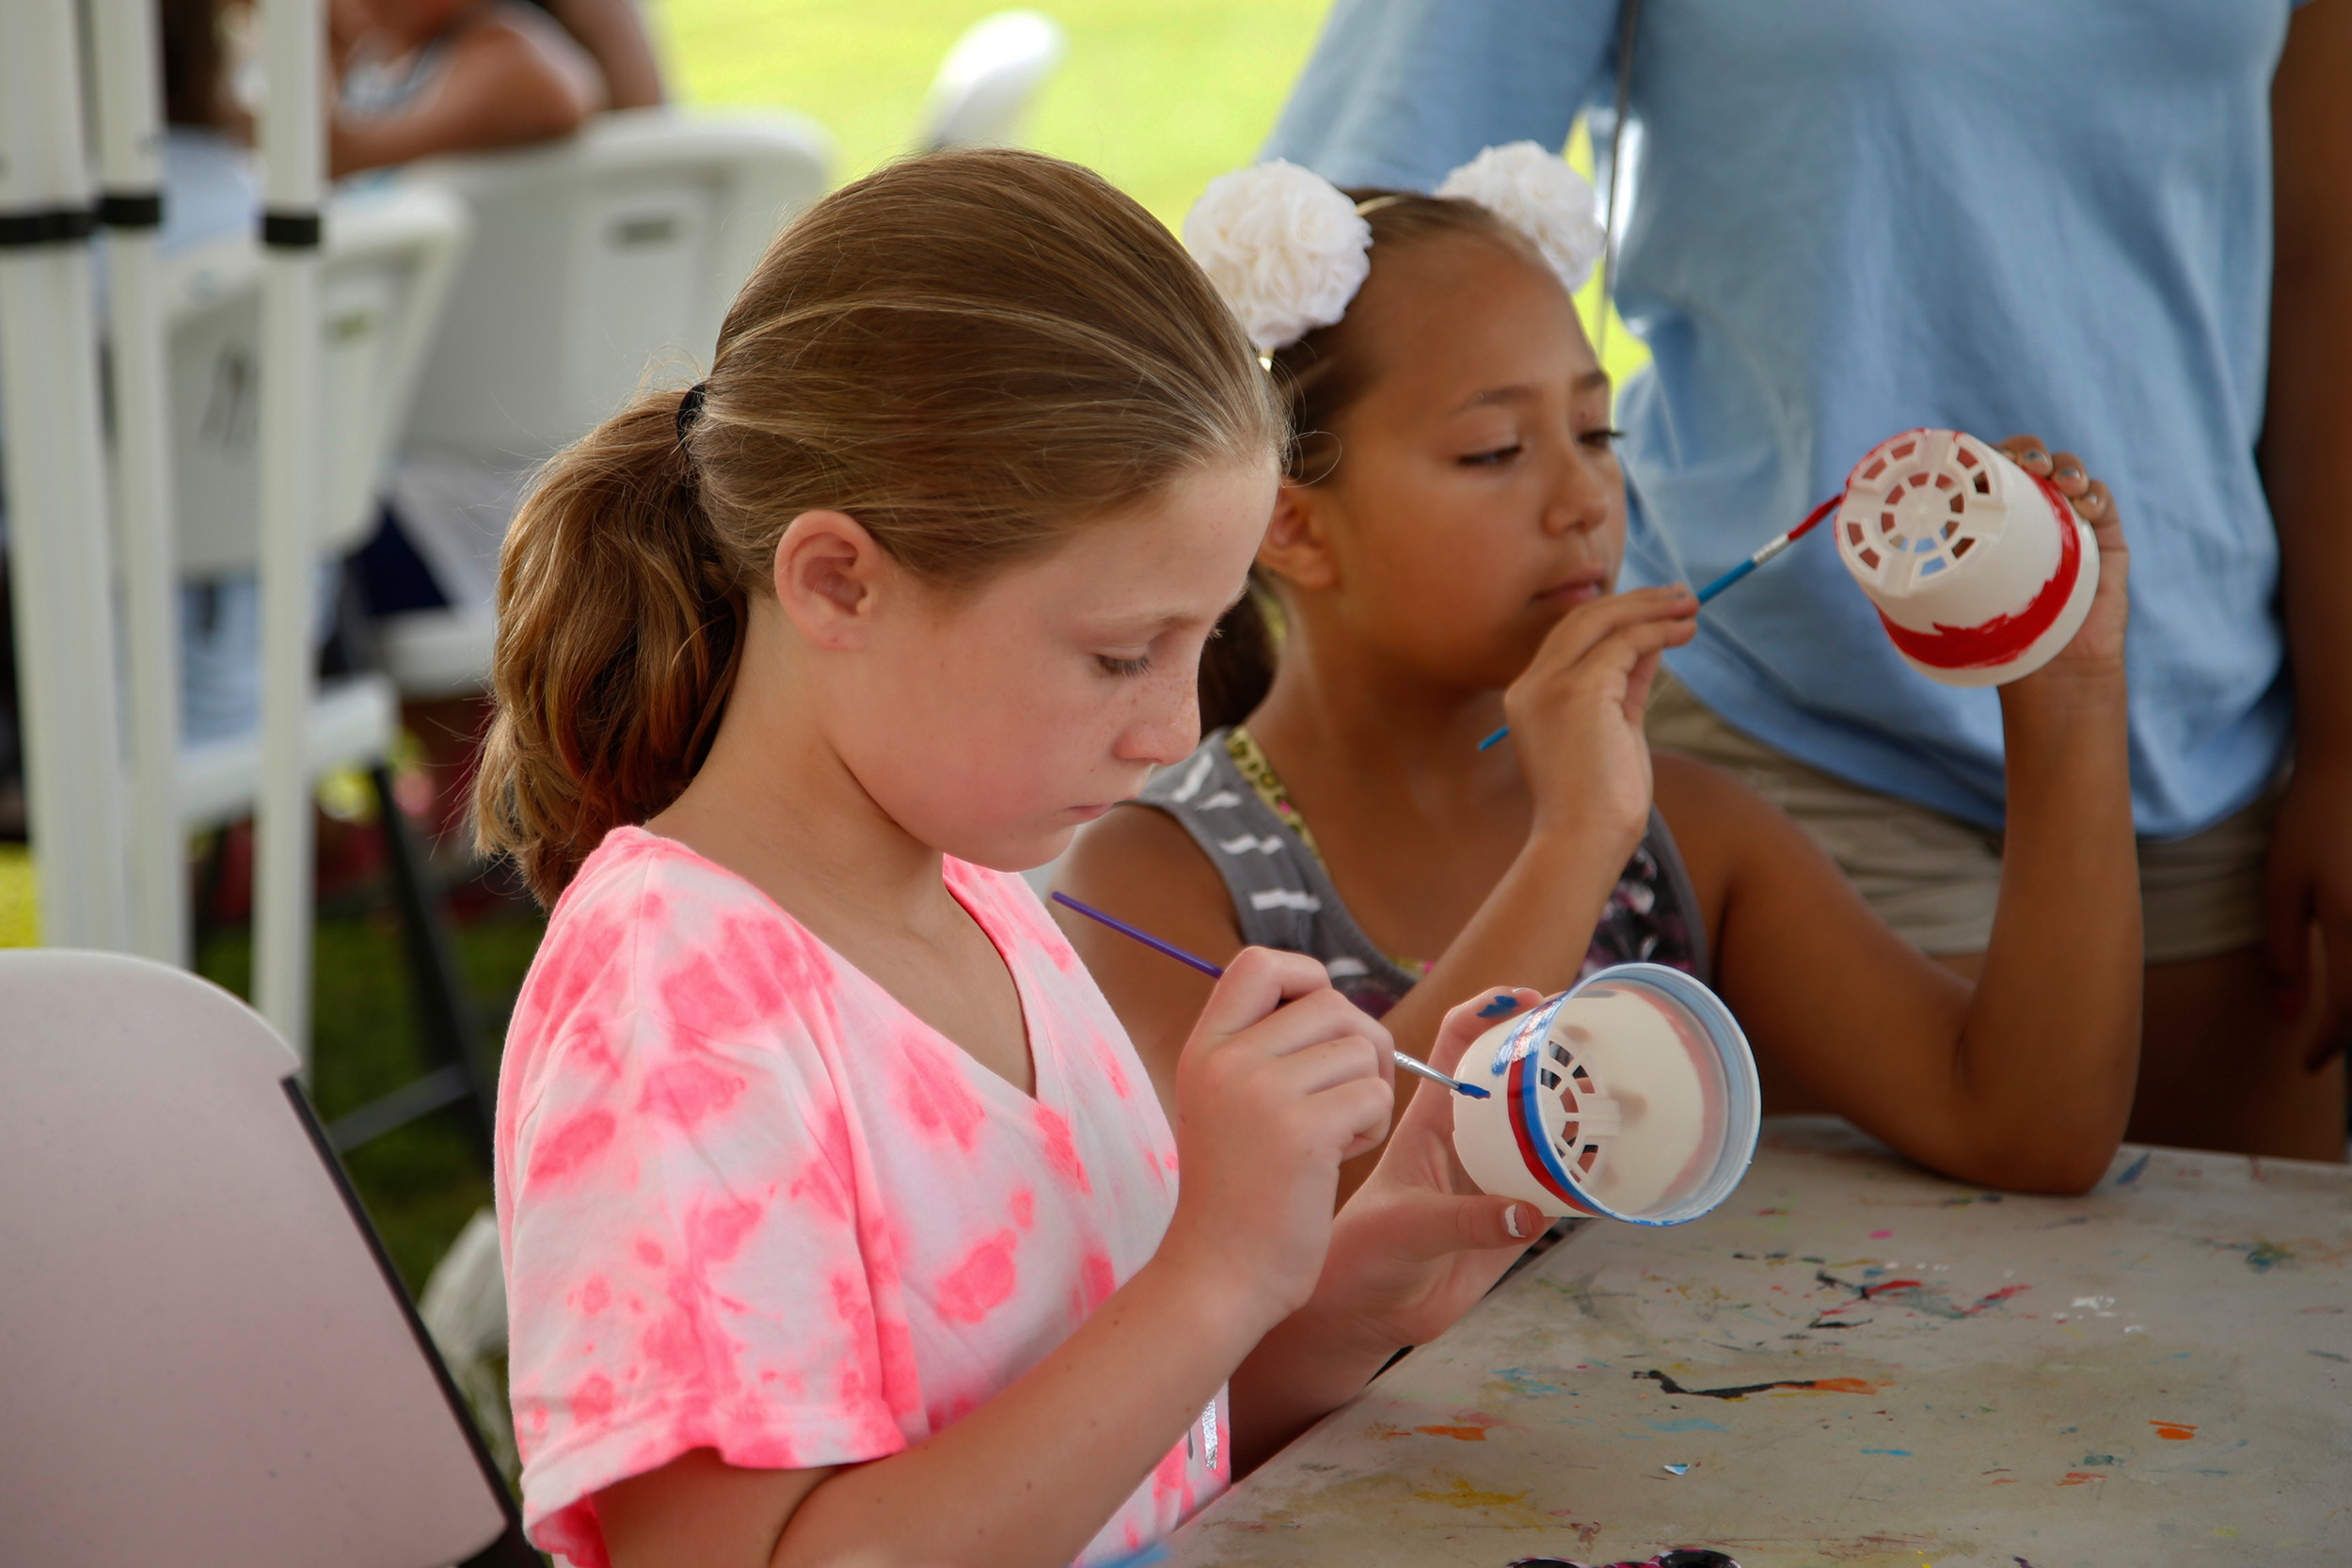 9-year-olds Luna Voss and Melanie Colon painted their flower pots.